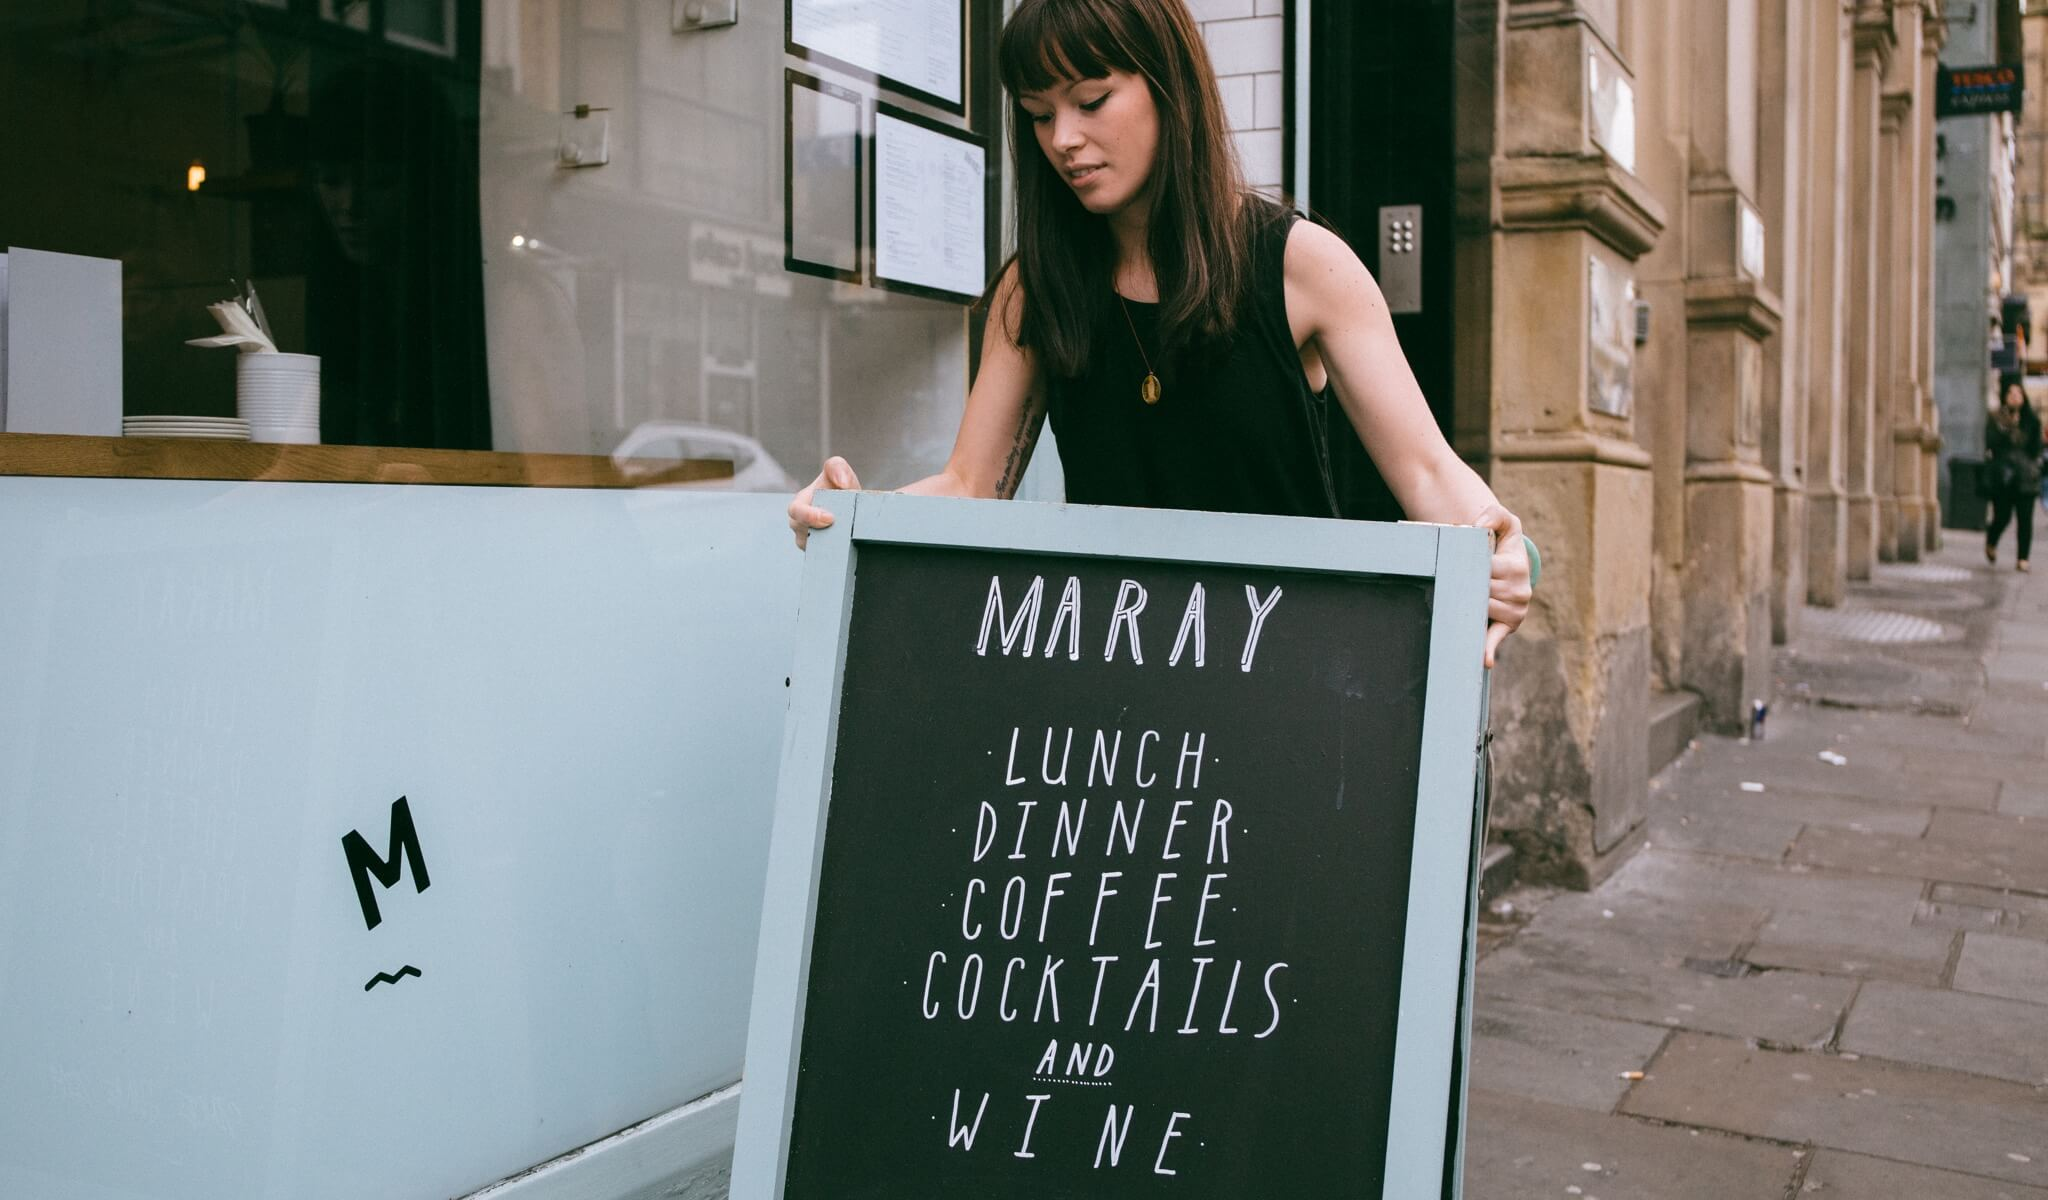 A sandwich board being placed outside Maray restaurant by a waitress